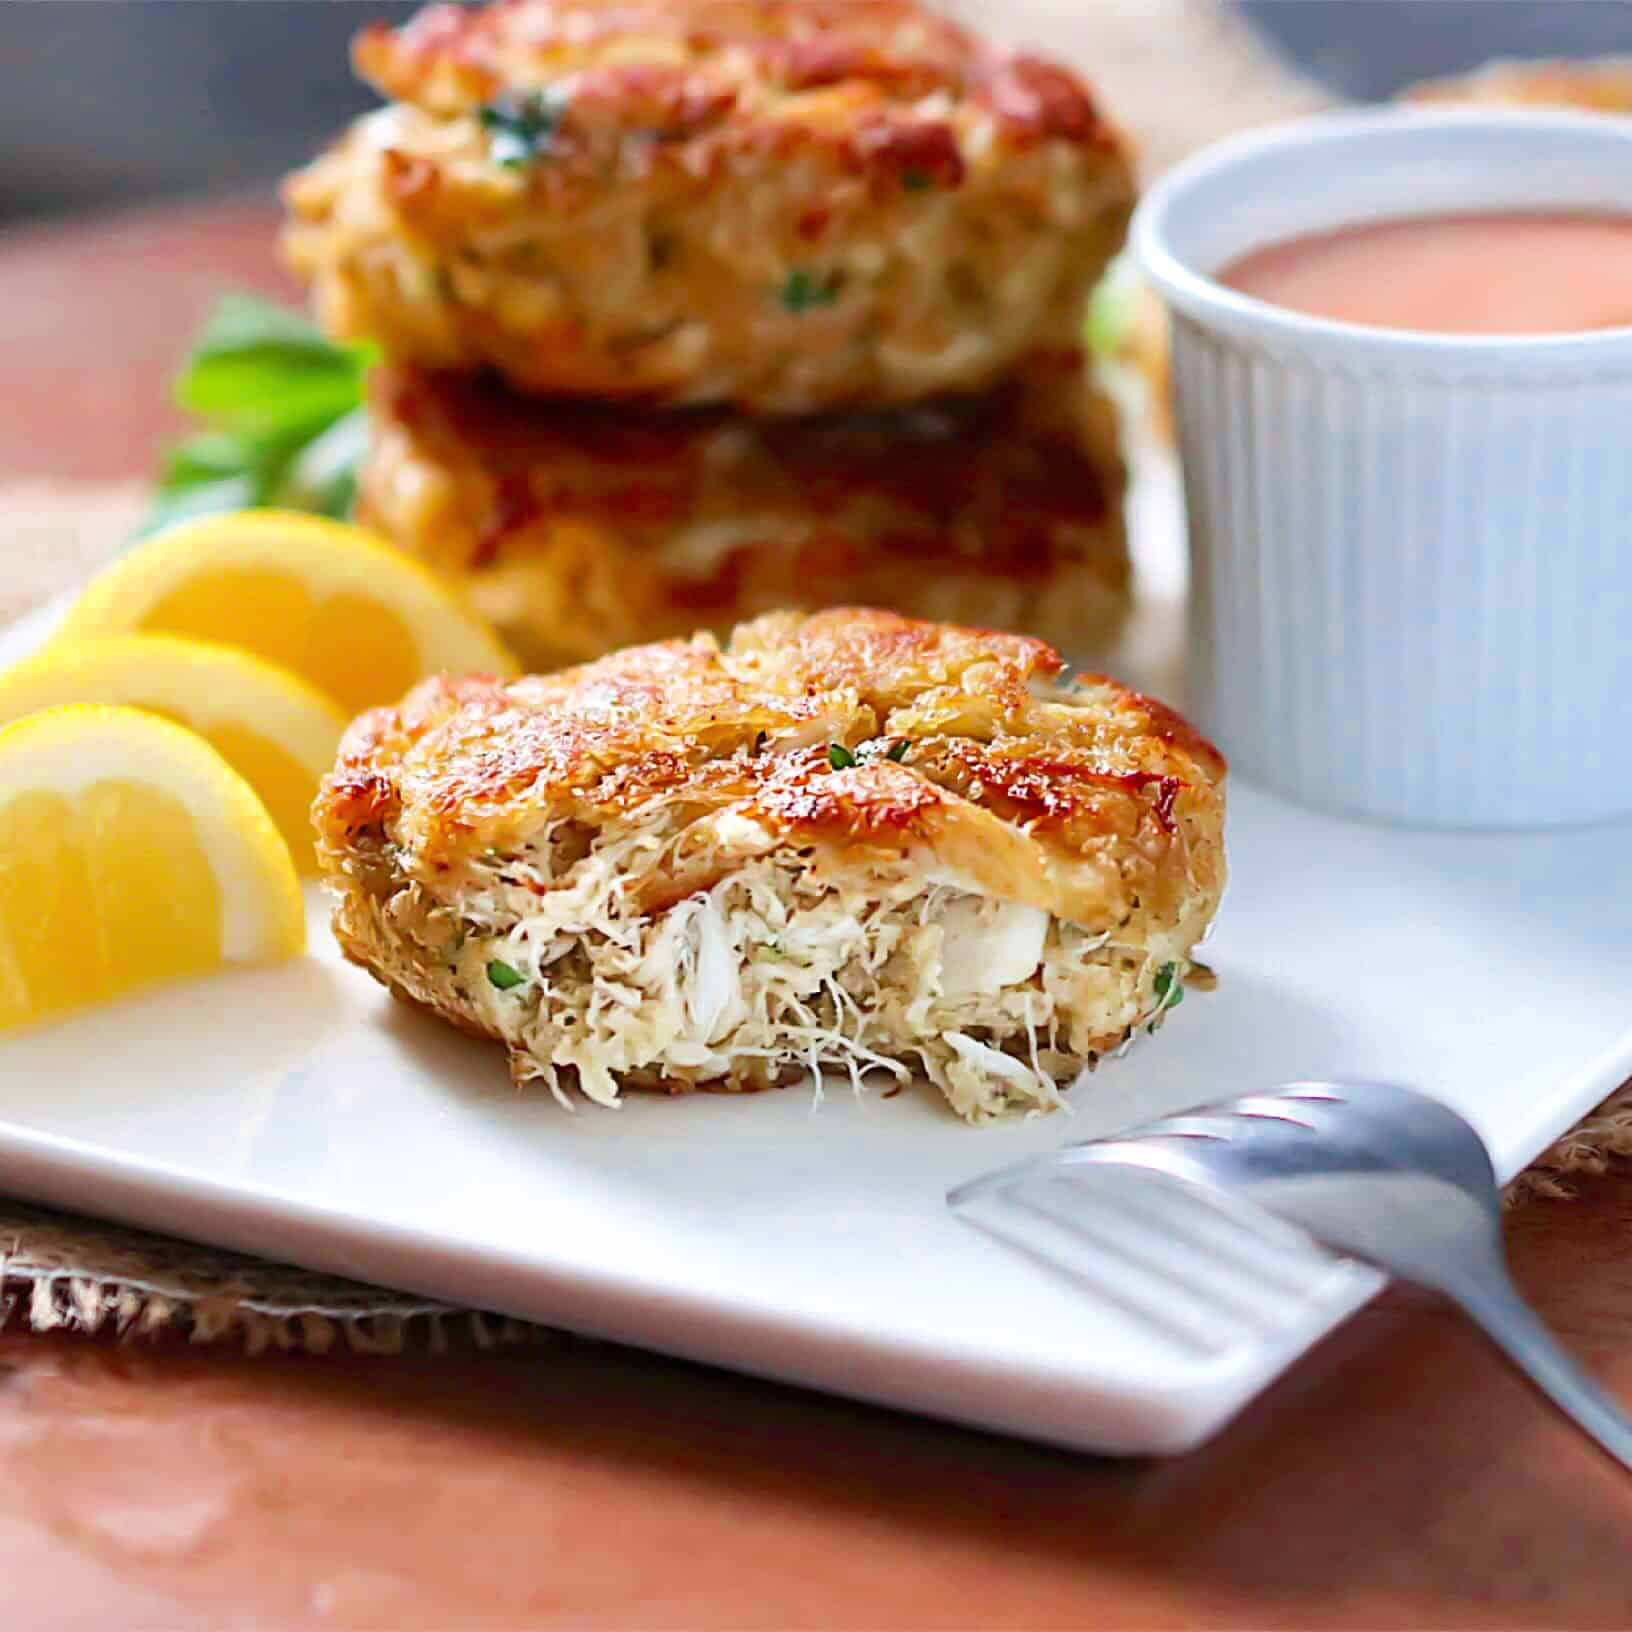 Crab Cakes with lemon wedges